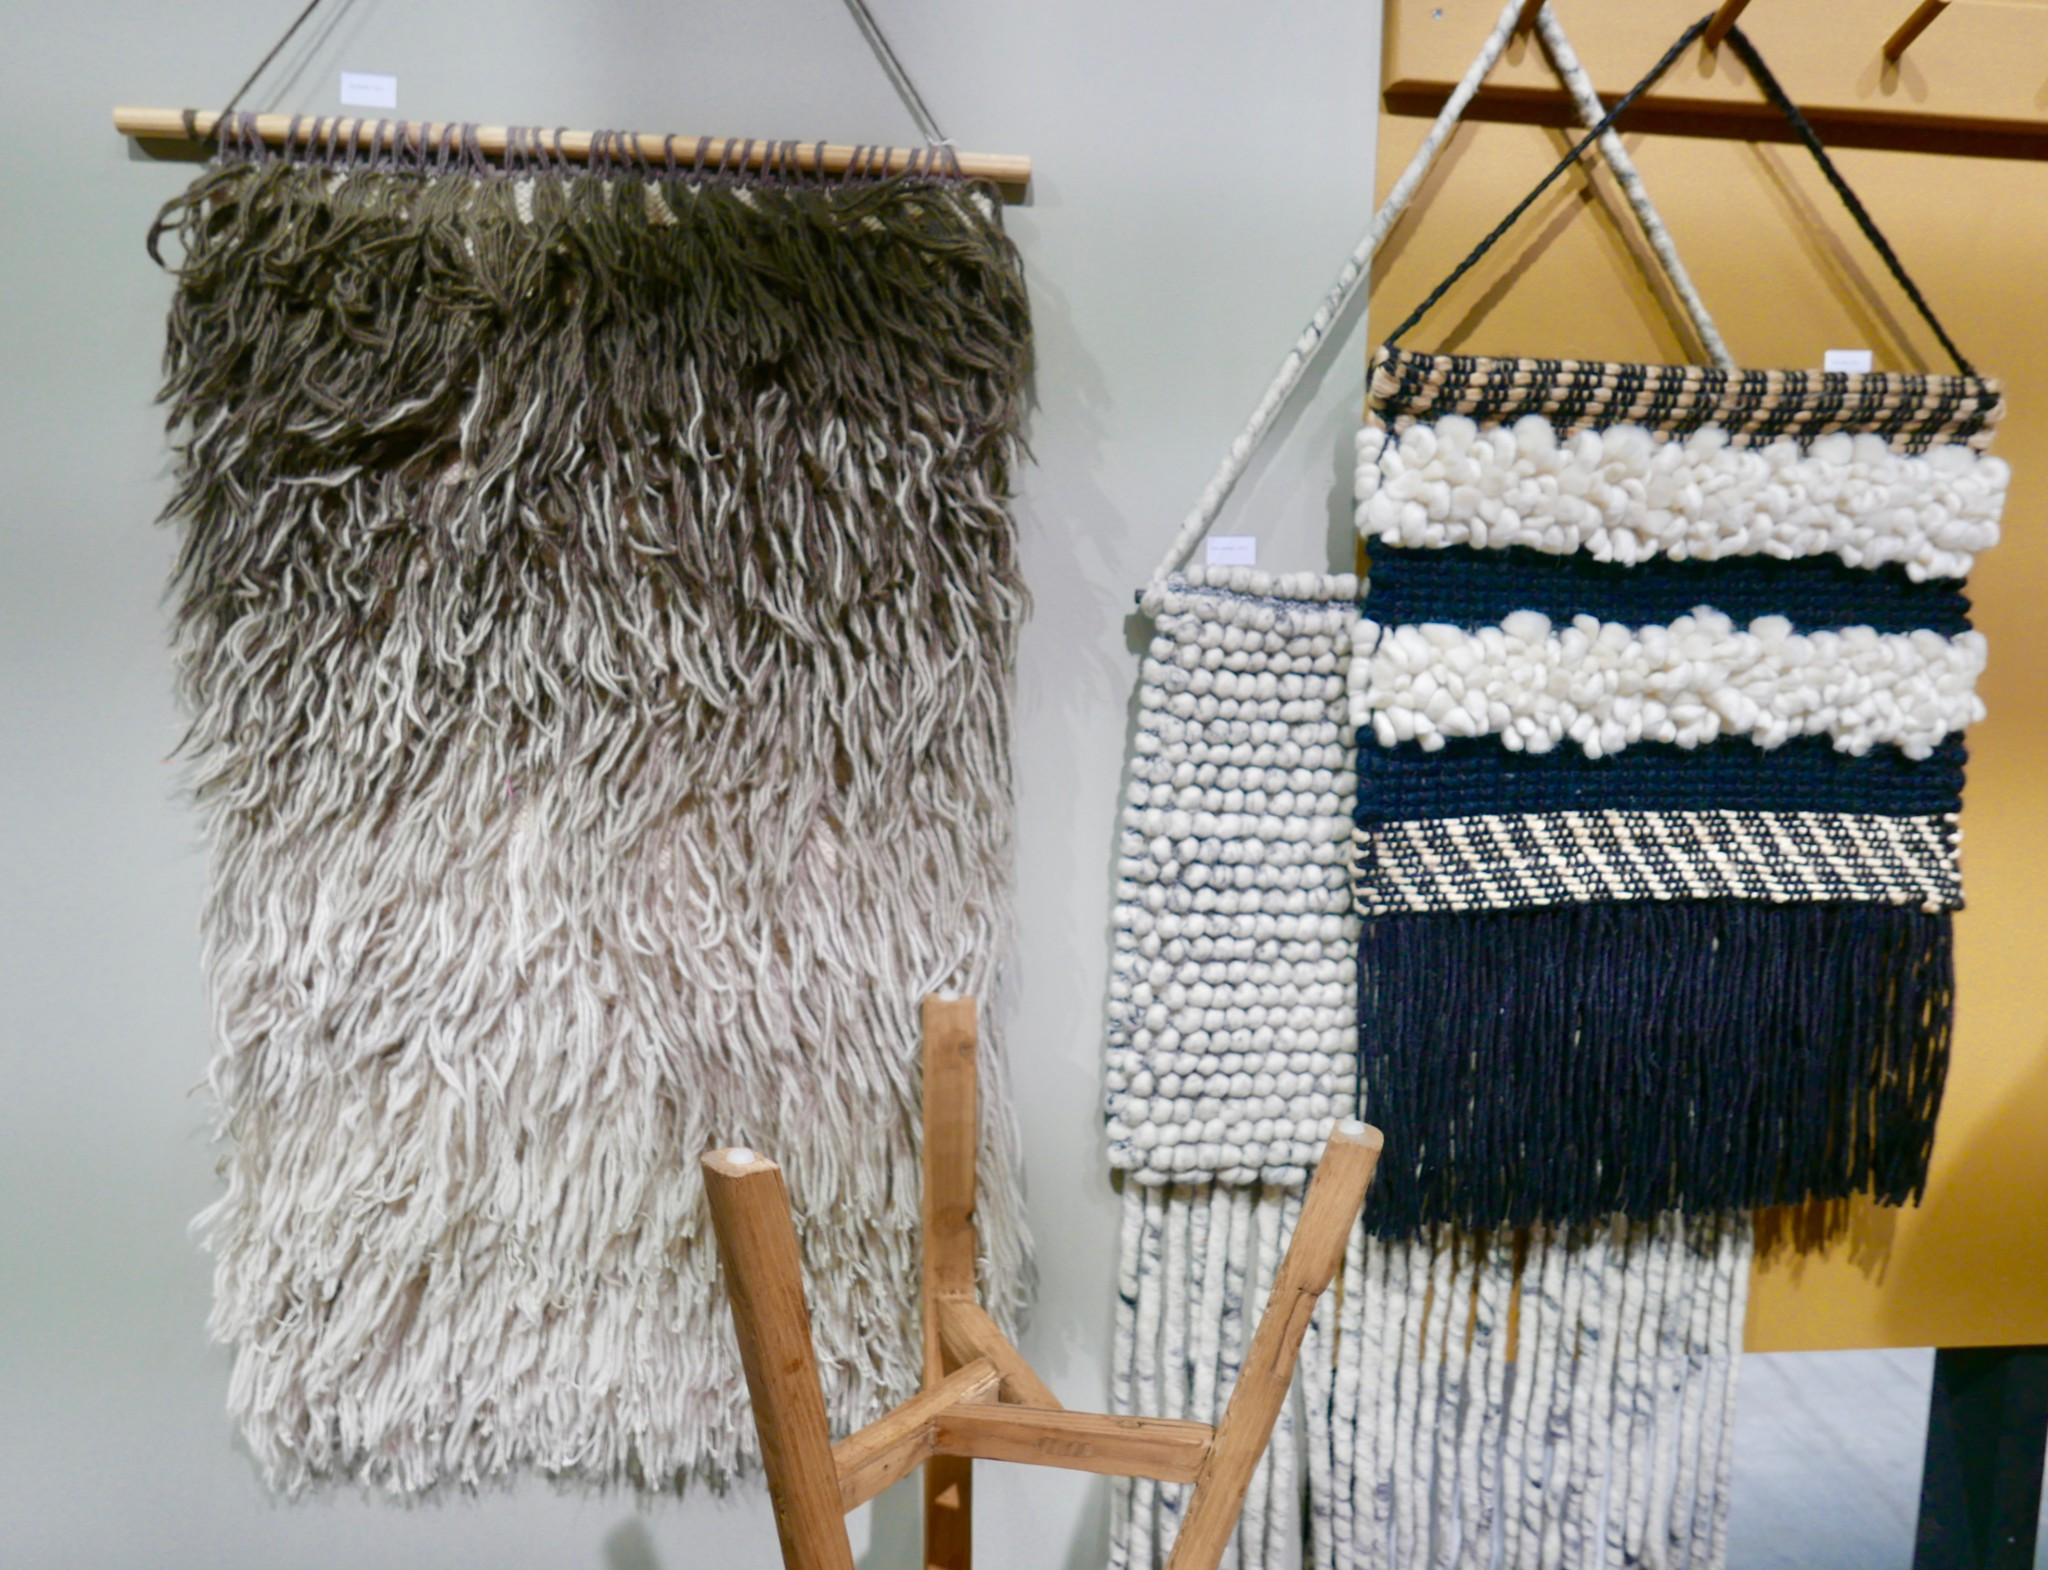 wall-hangings-oslo-design-fair-tendenser